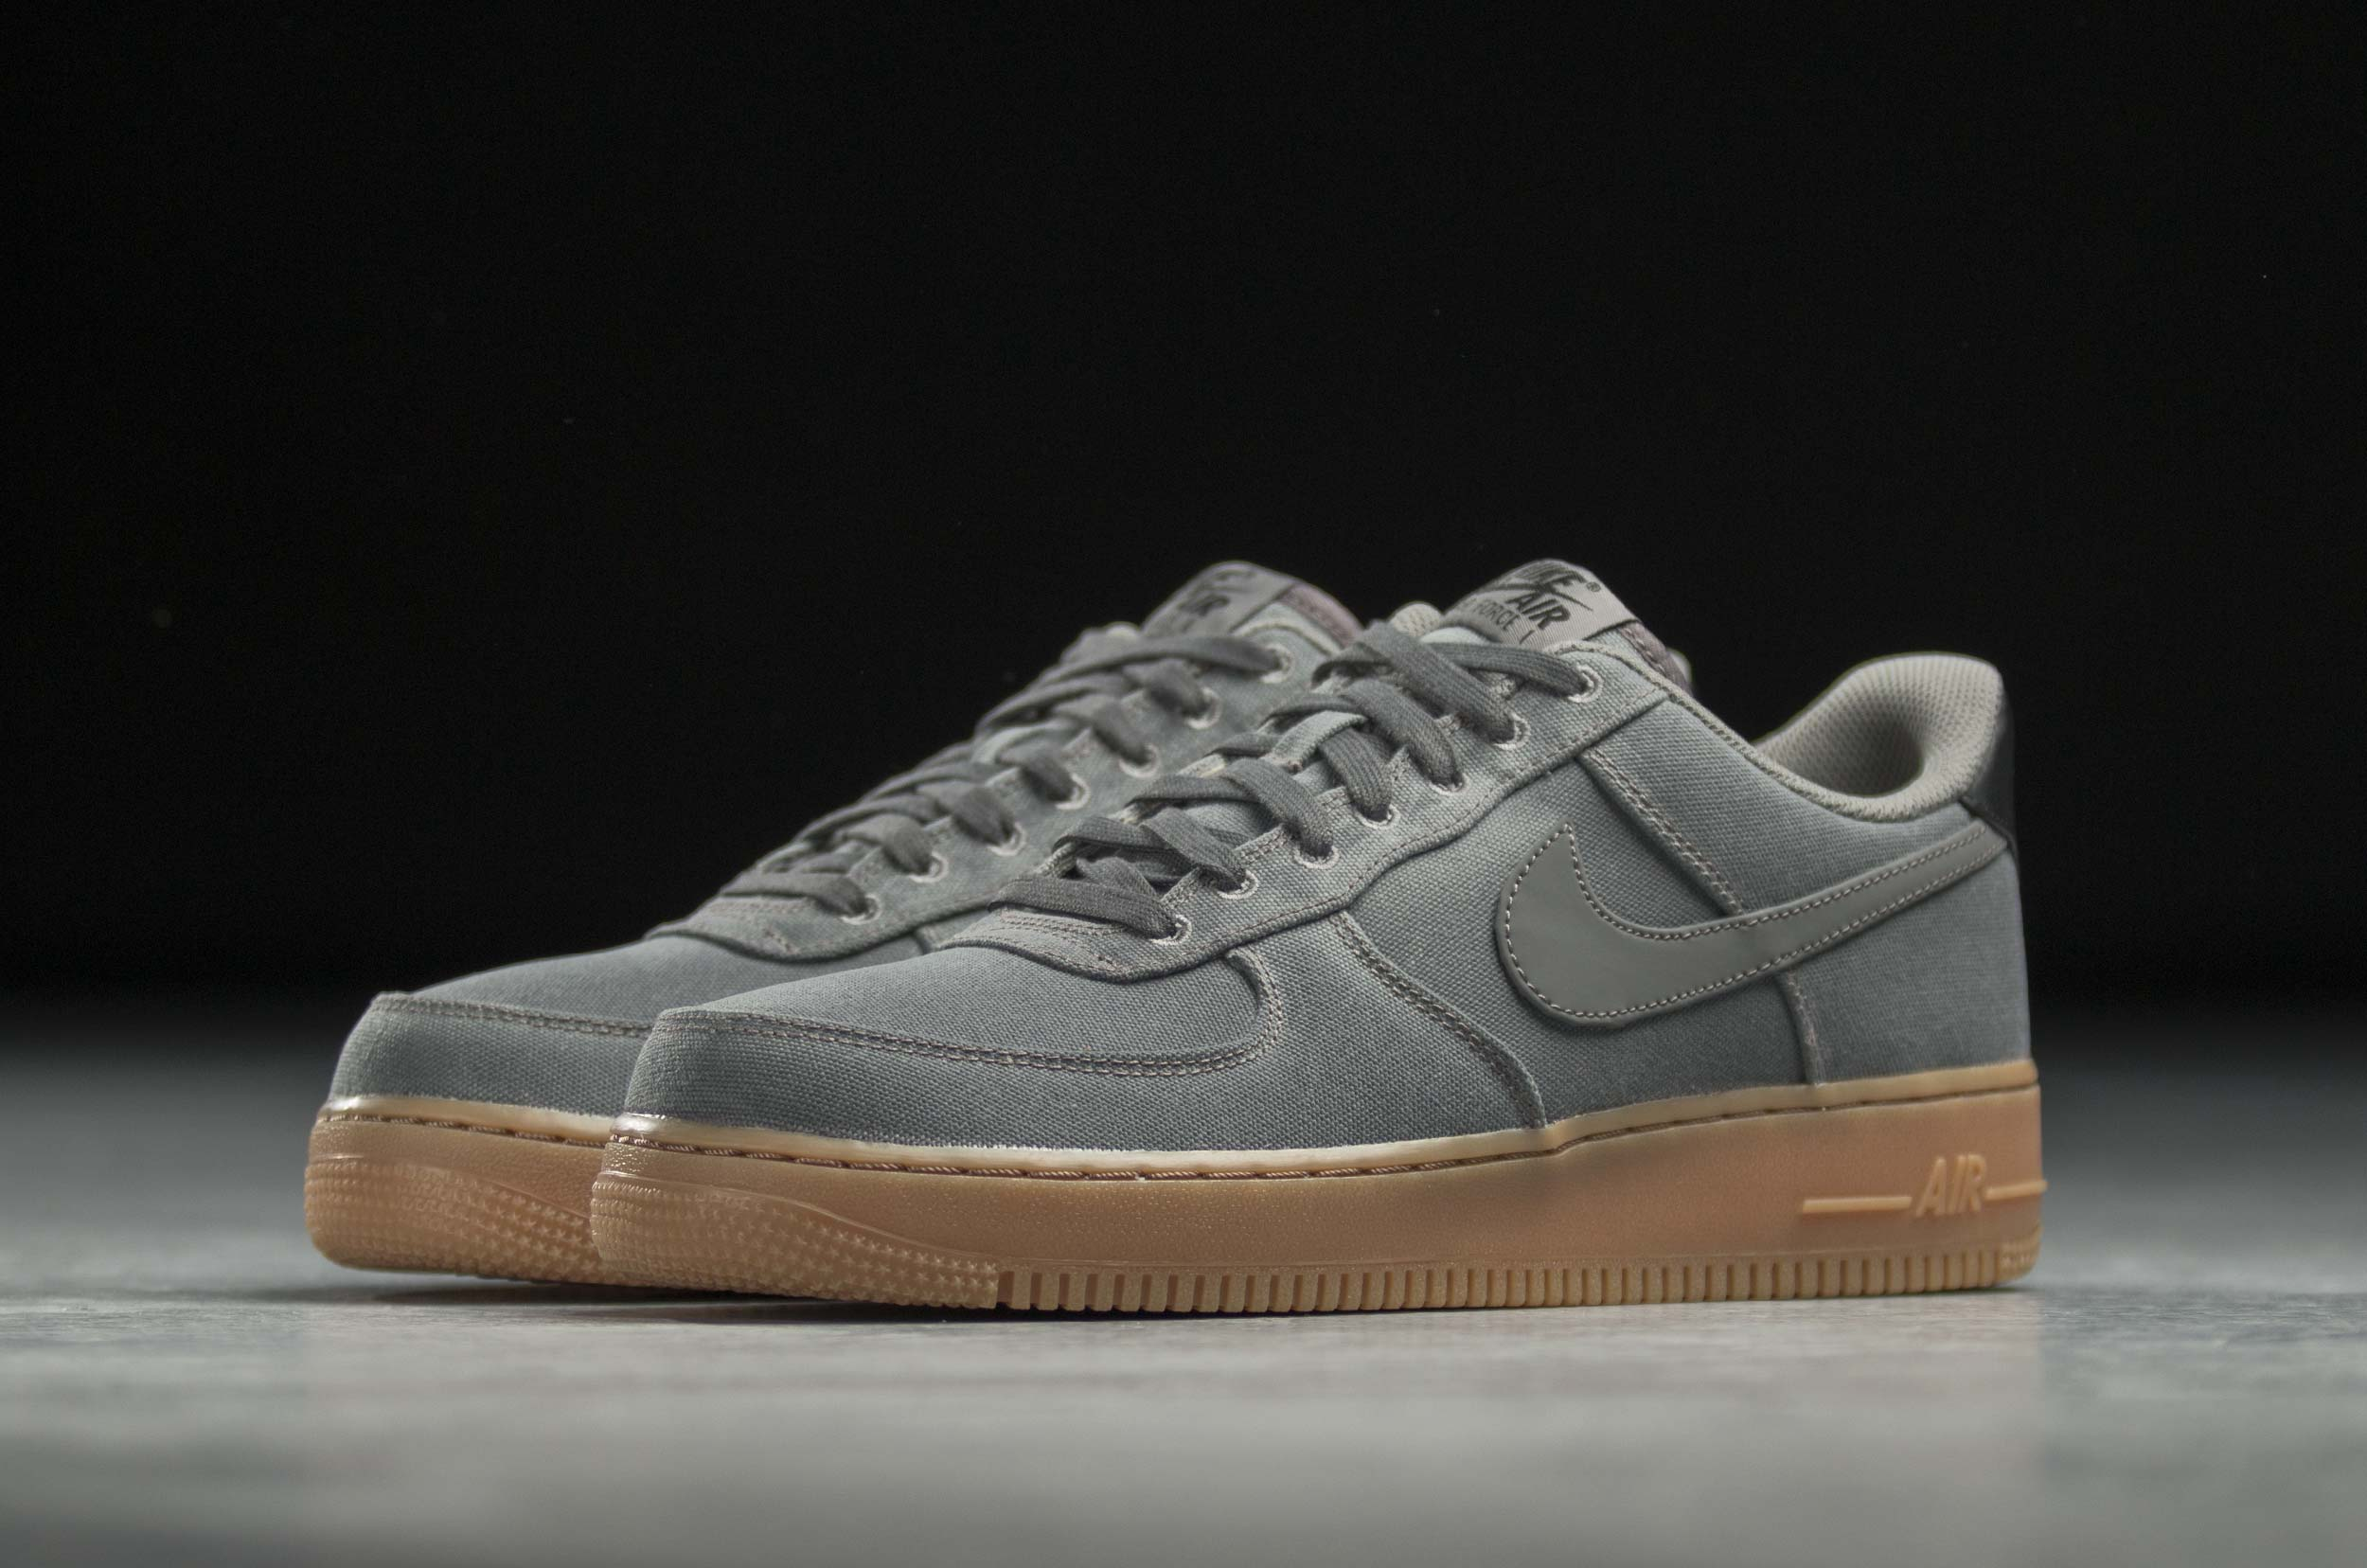 NIKE AIR FORCE 1 '07 LV8 STYLE AQ0117-001 Ανθρακί